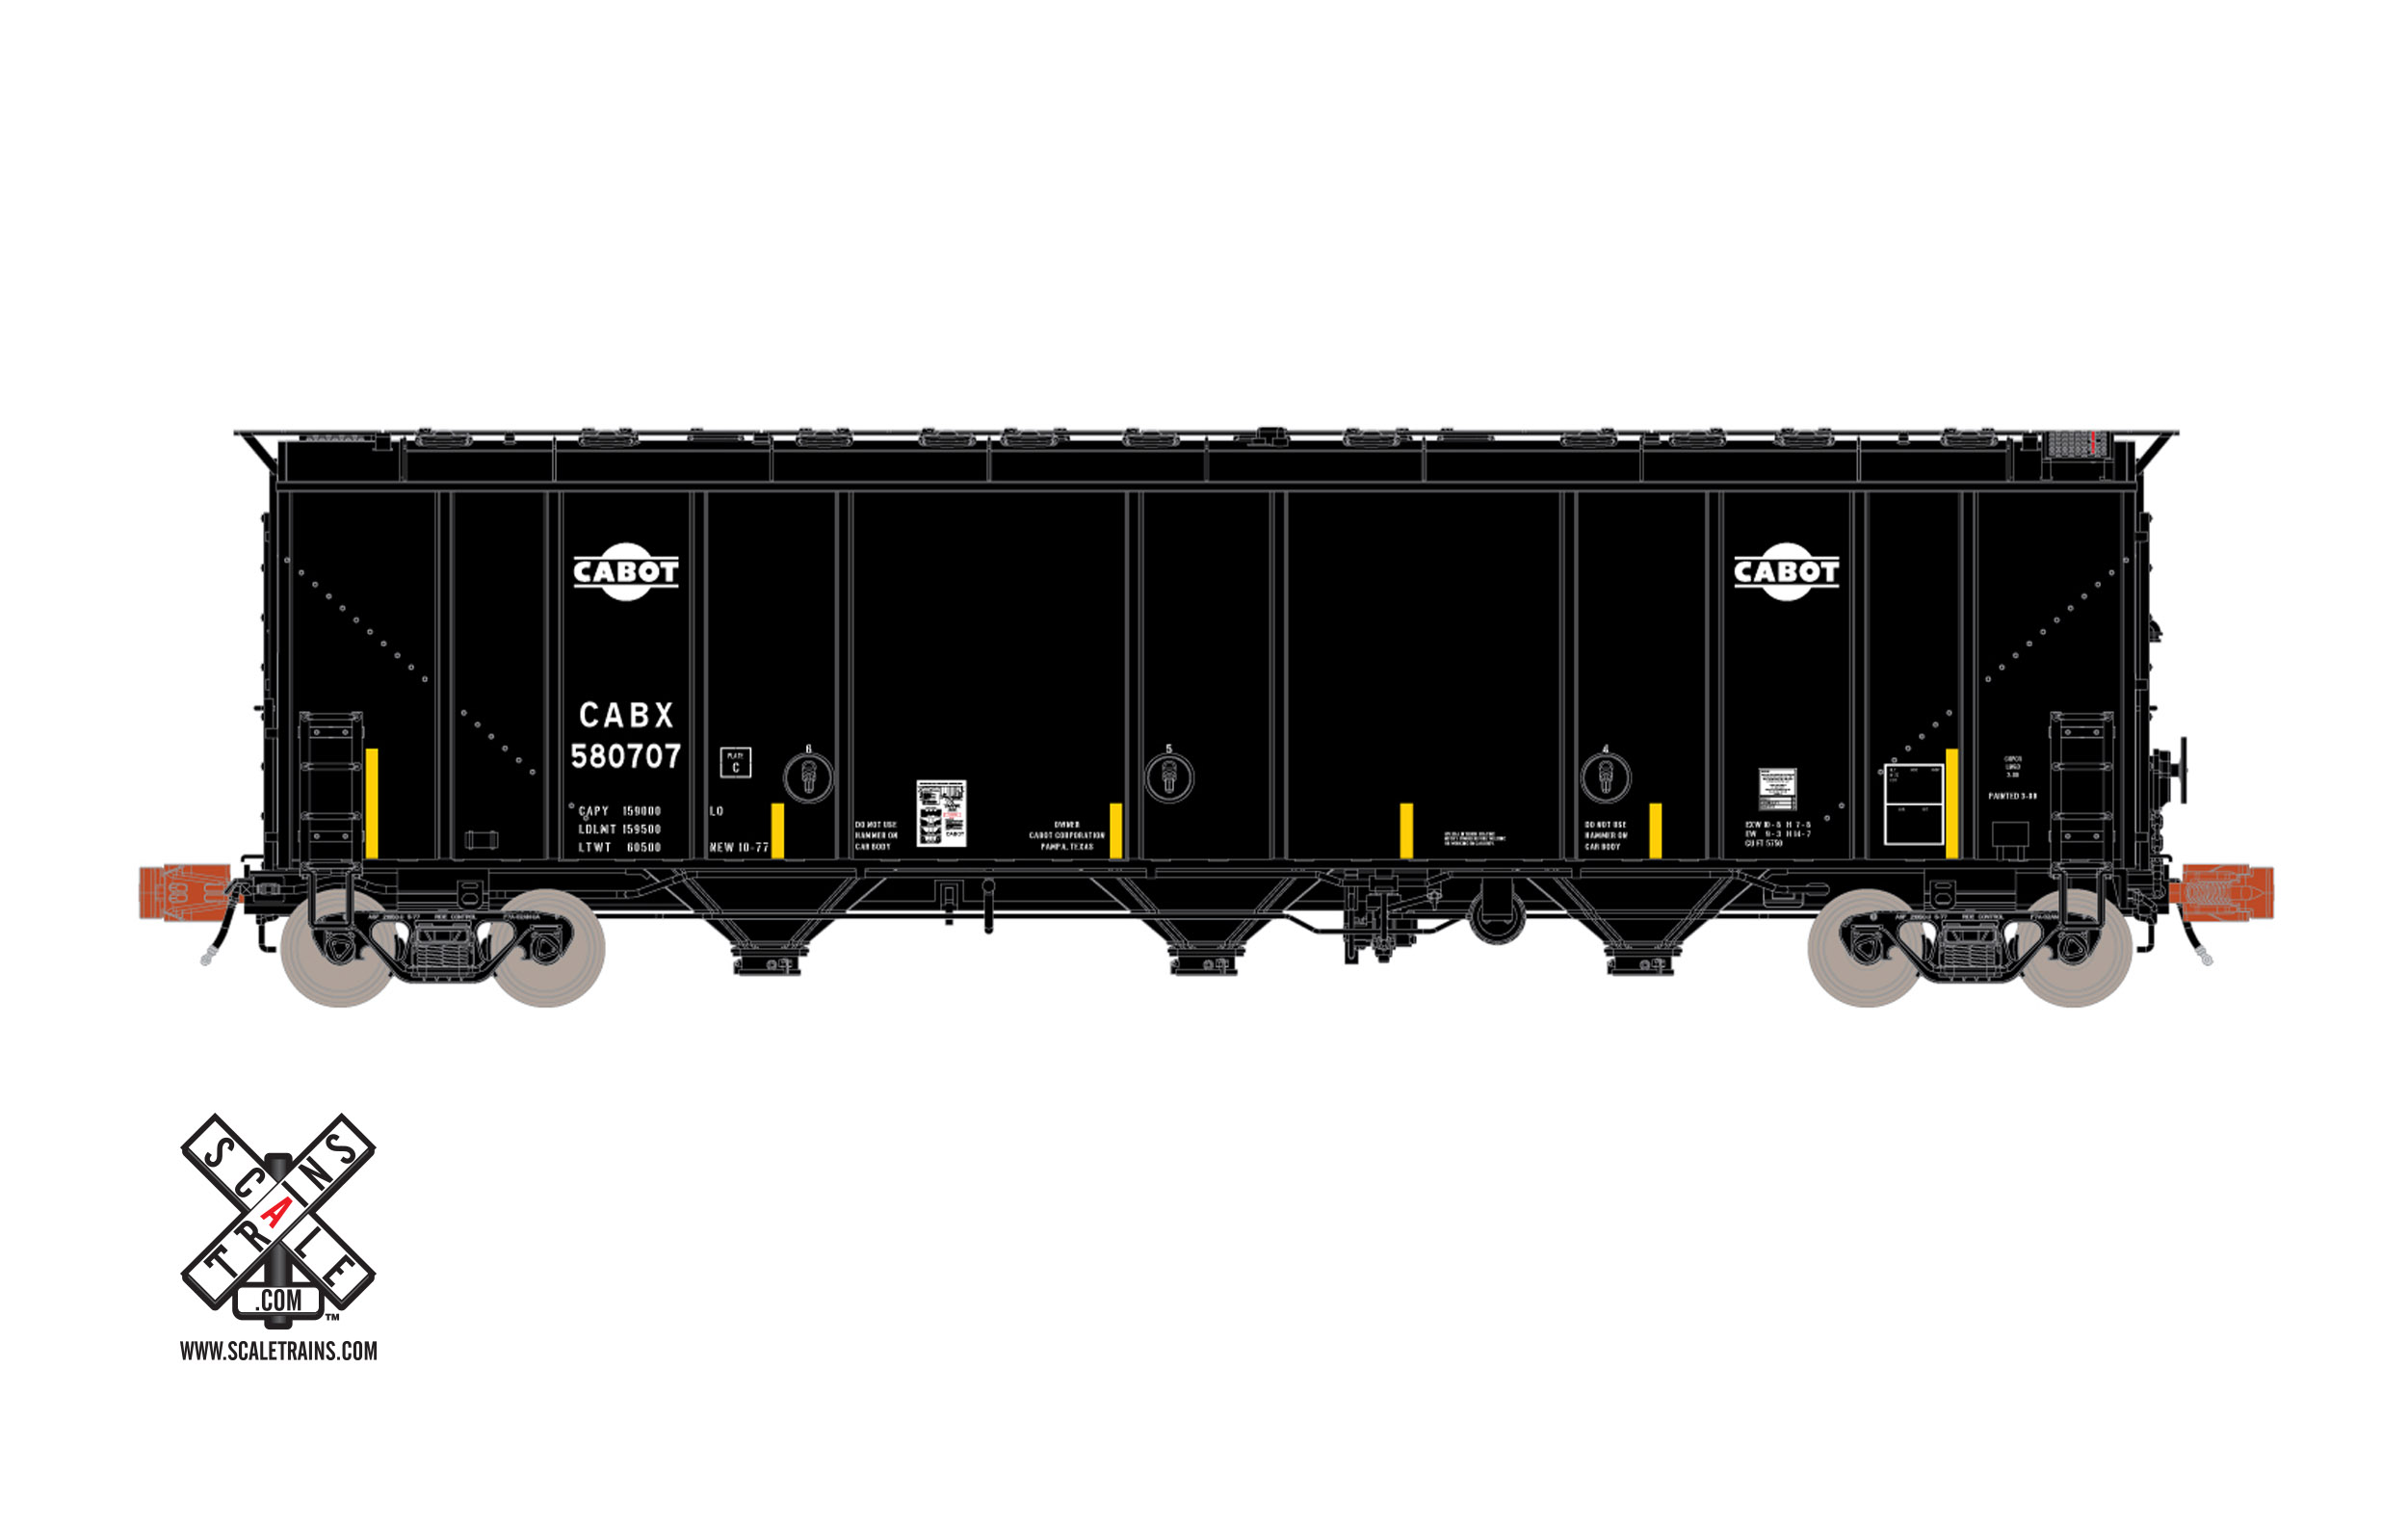 N Scale - ScaleTrains.com - STX30558 - Covered Hopper, 3-Bay, Thrall 5750 - Cabot - 580706